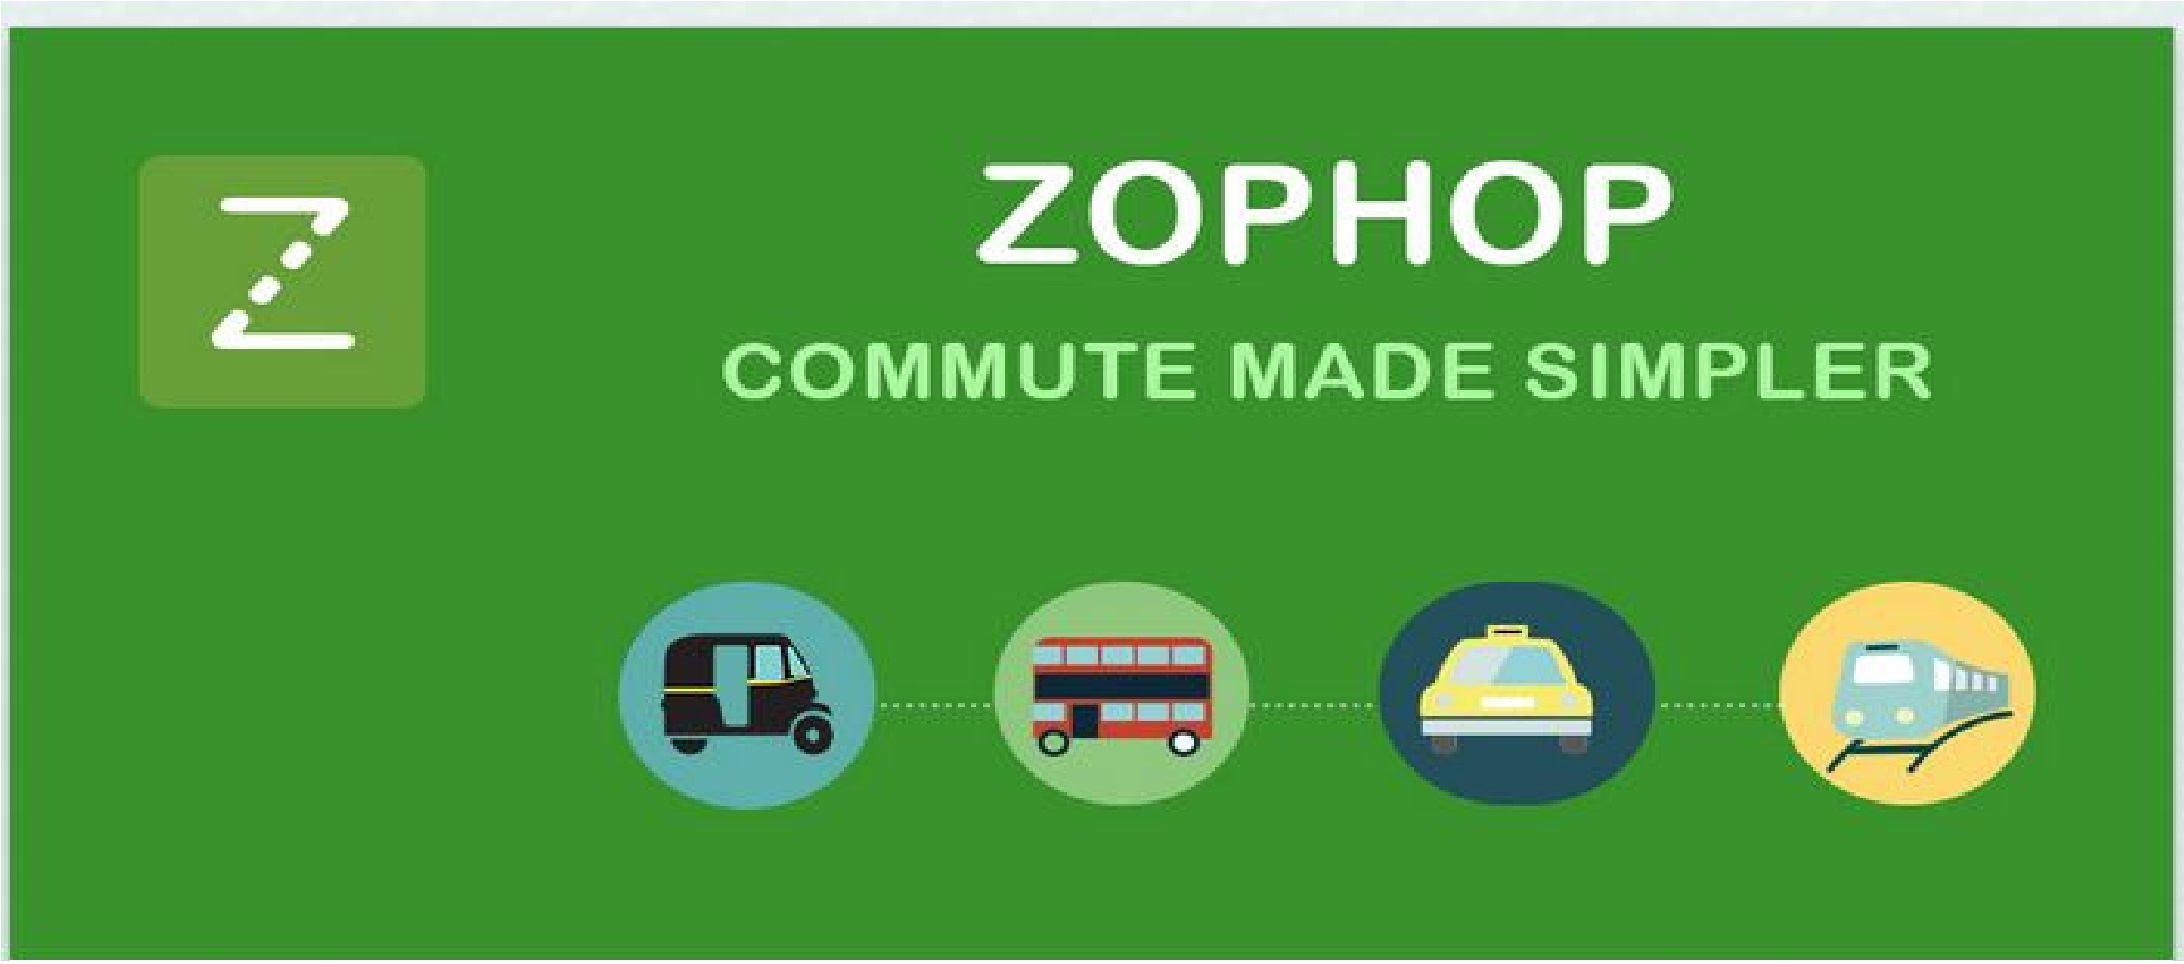 Zophop app offer